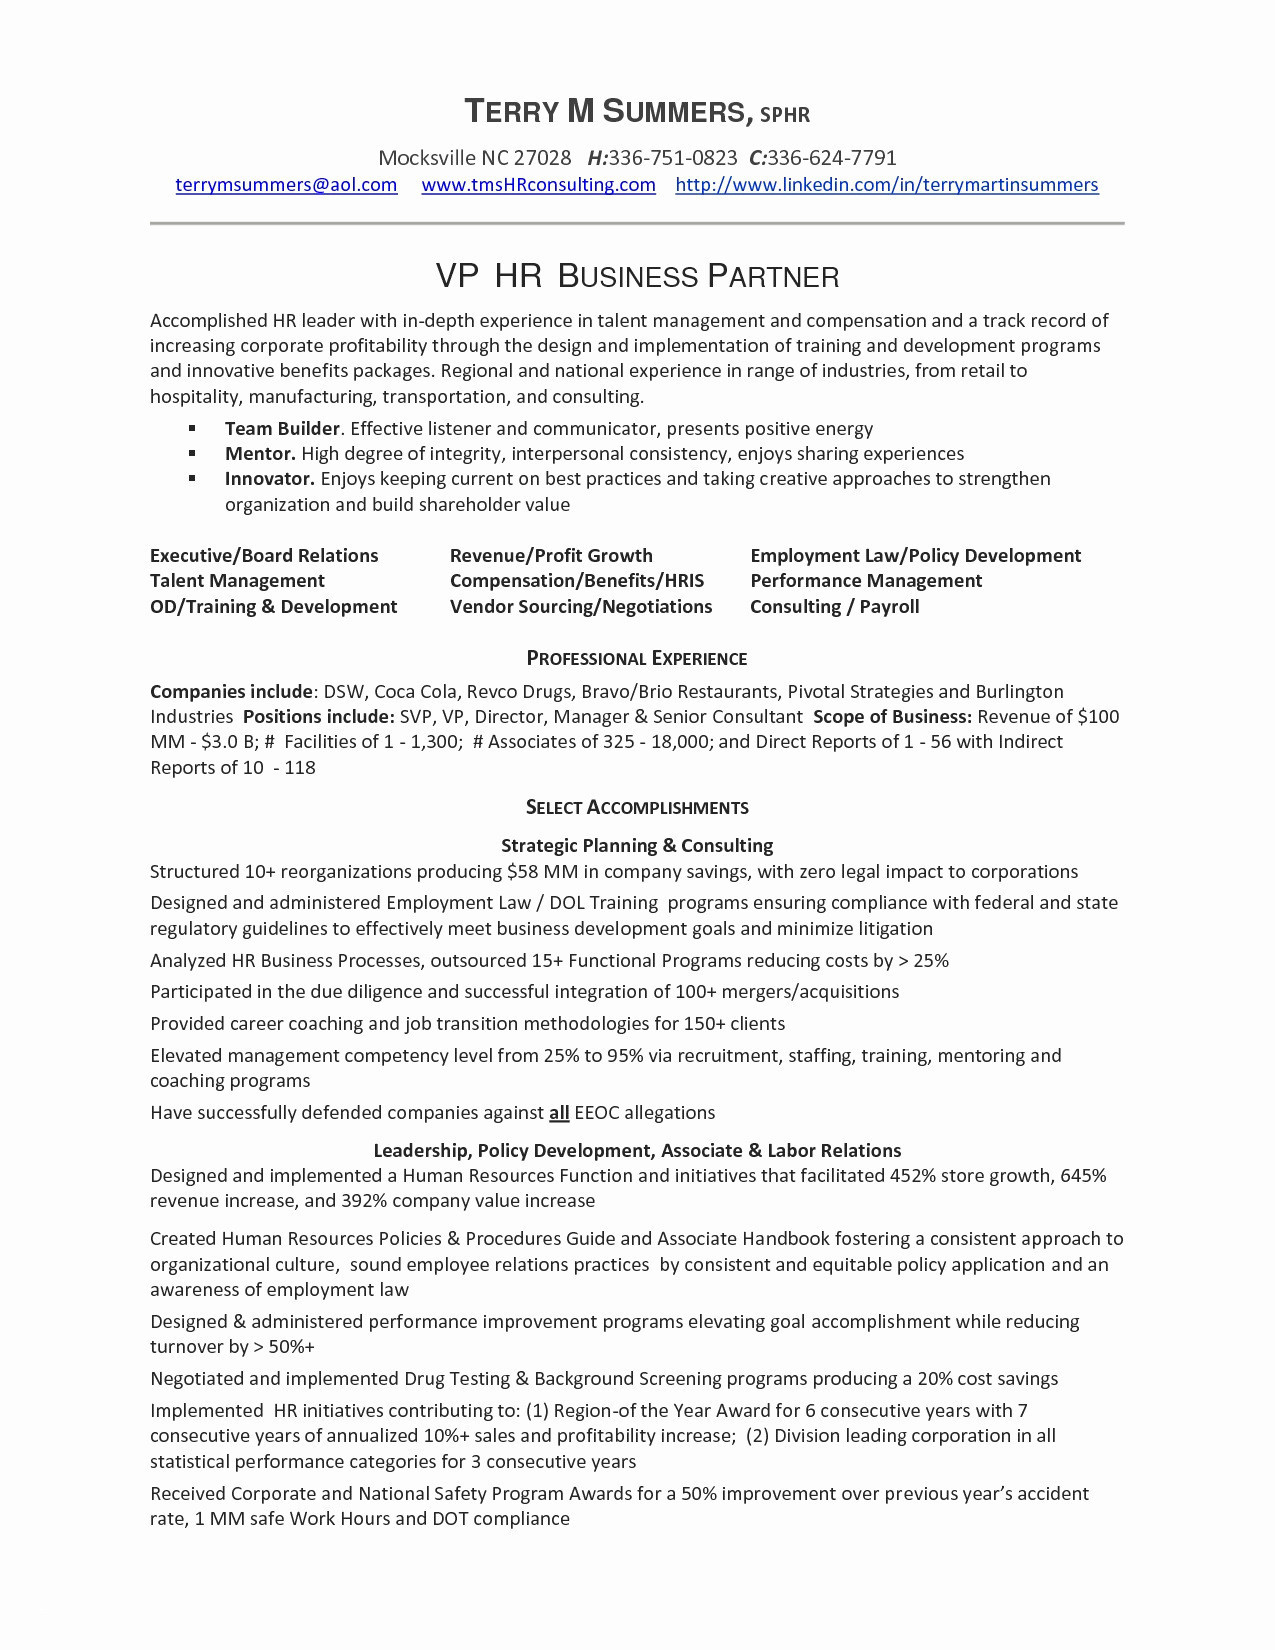 Attorney Resume Template - Legal Letters Templates Best Law Resume Template New Legal Resume